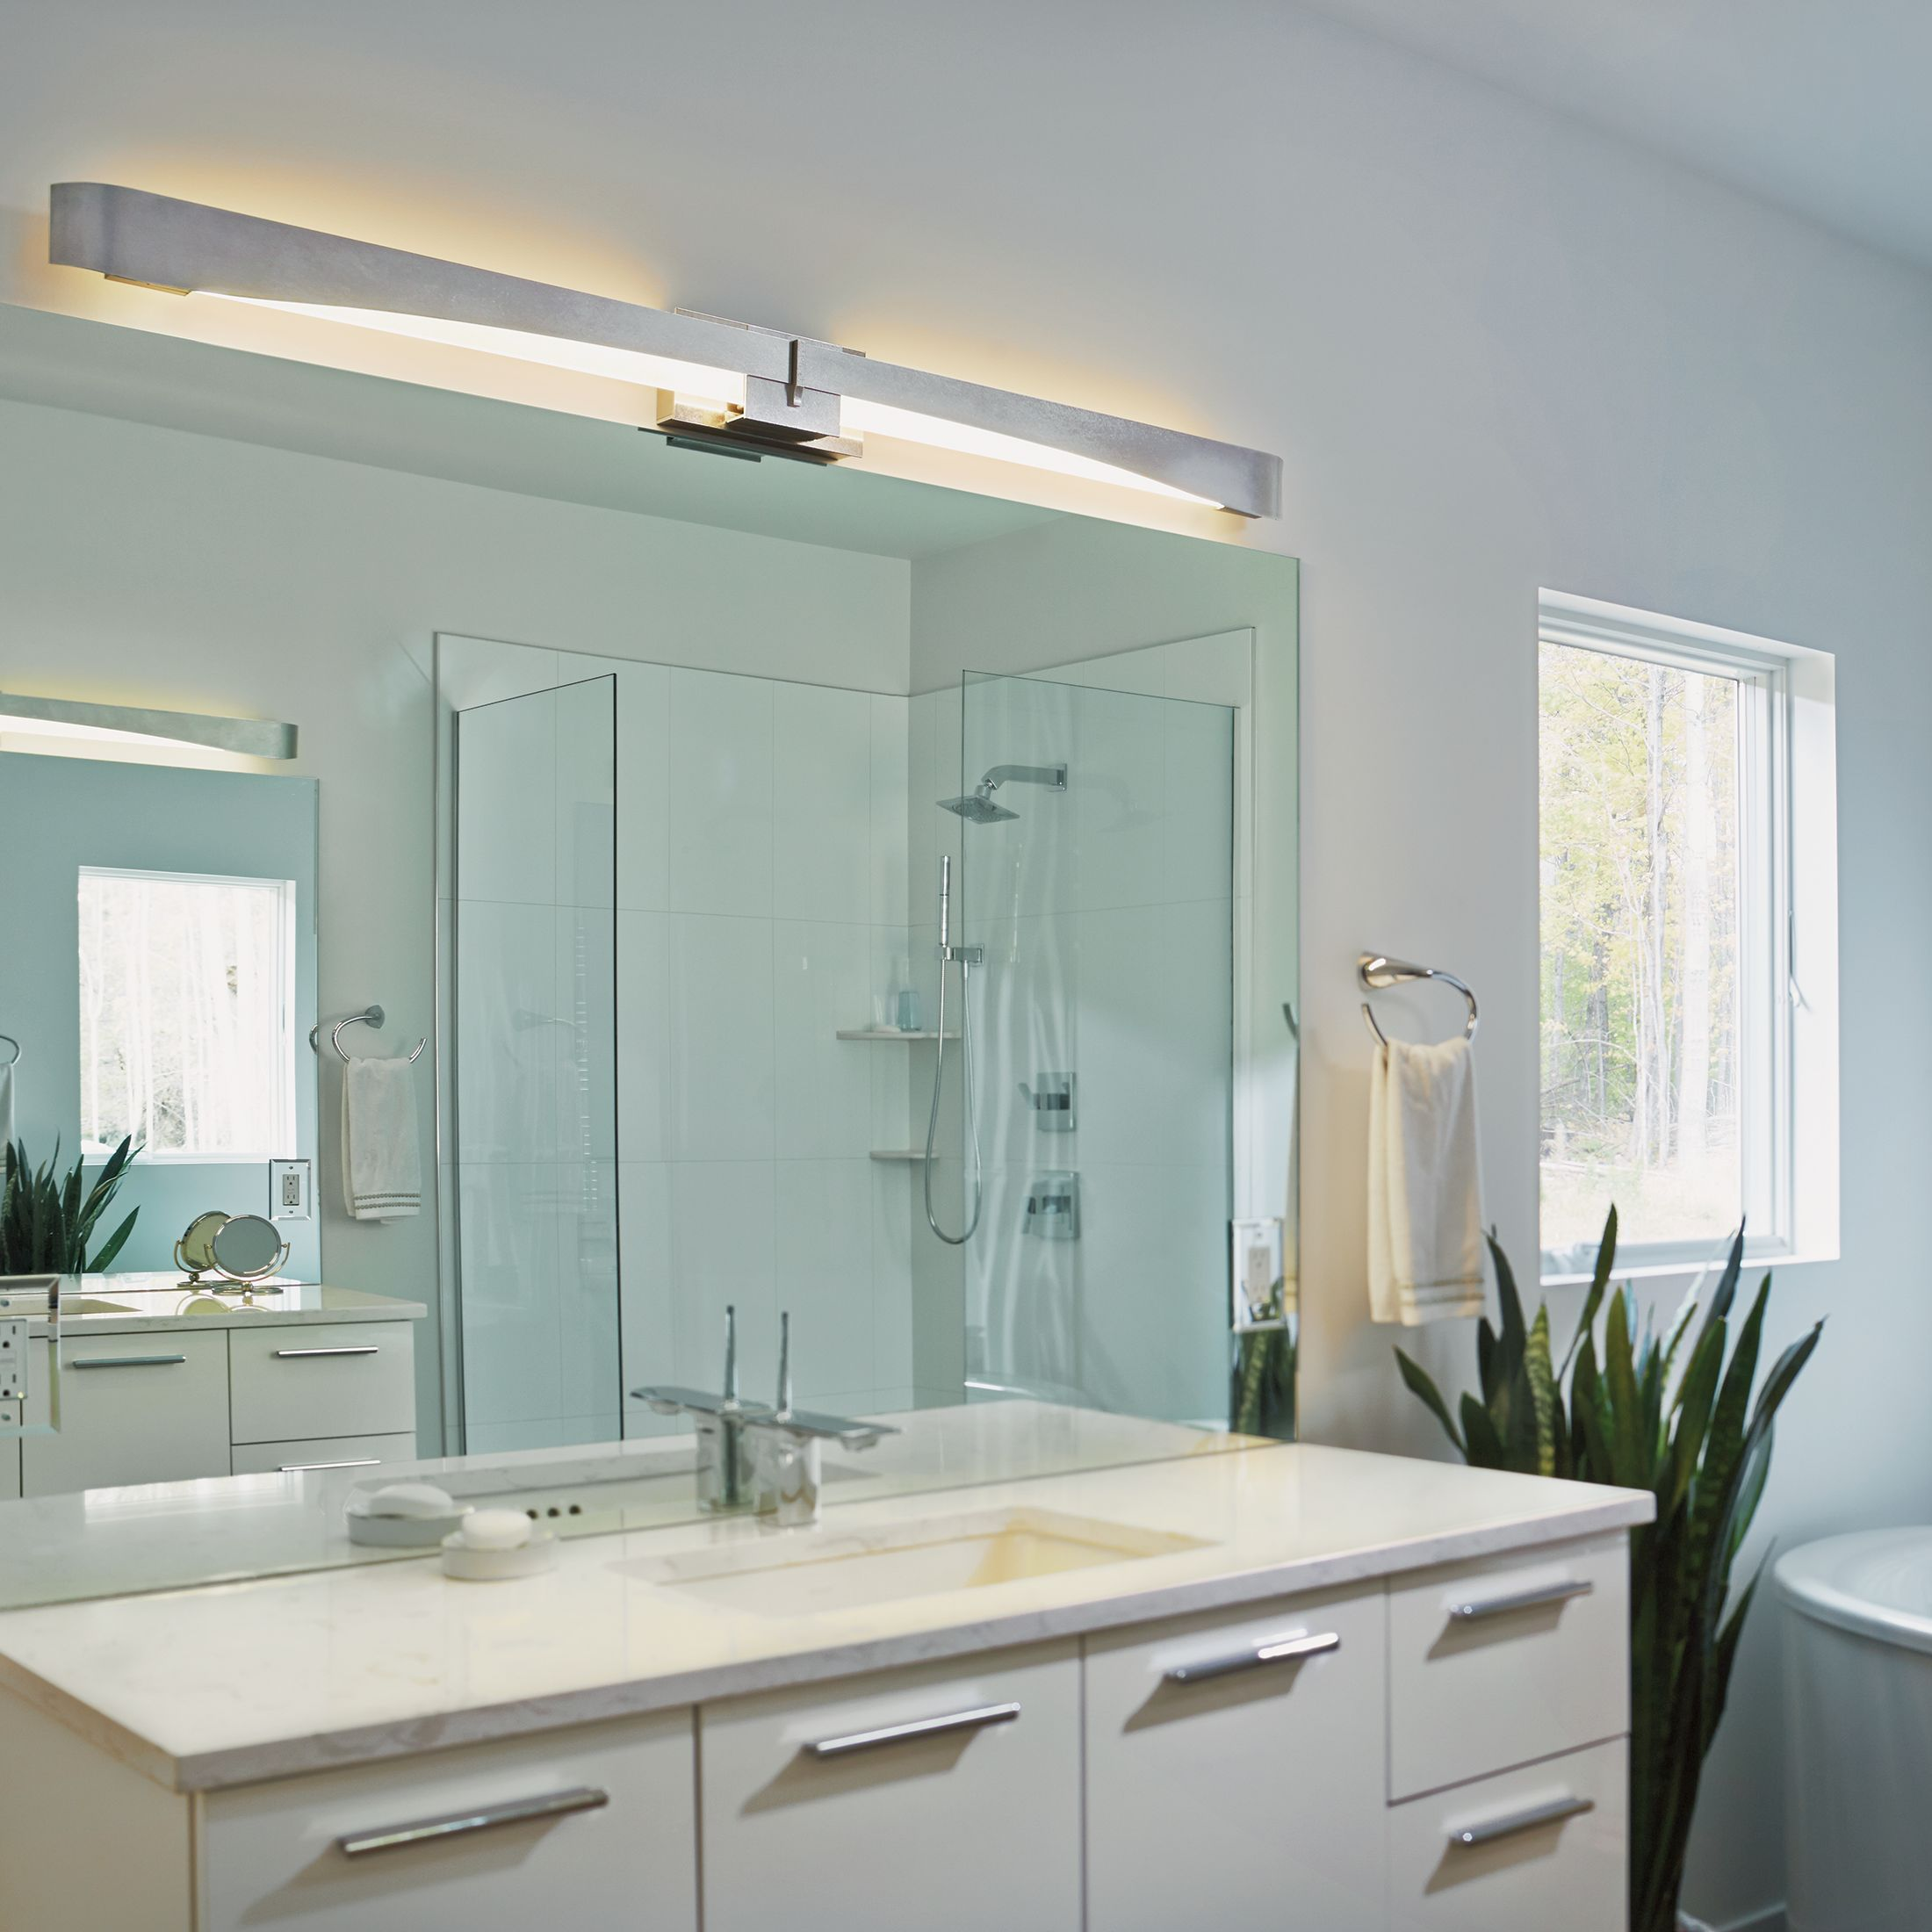 Glide LED Bath Bar Sconce Hubbardton Forge - Bathroom sconces with shades